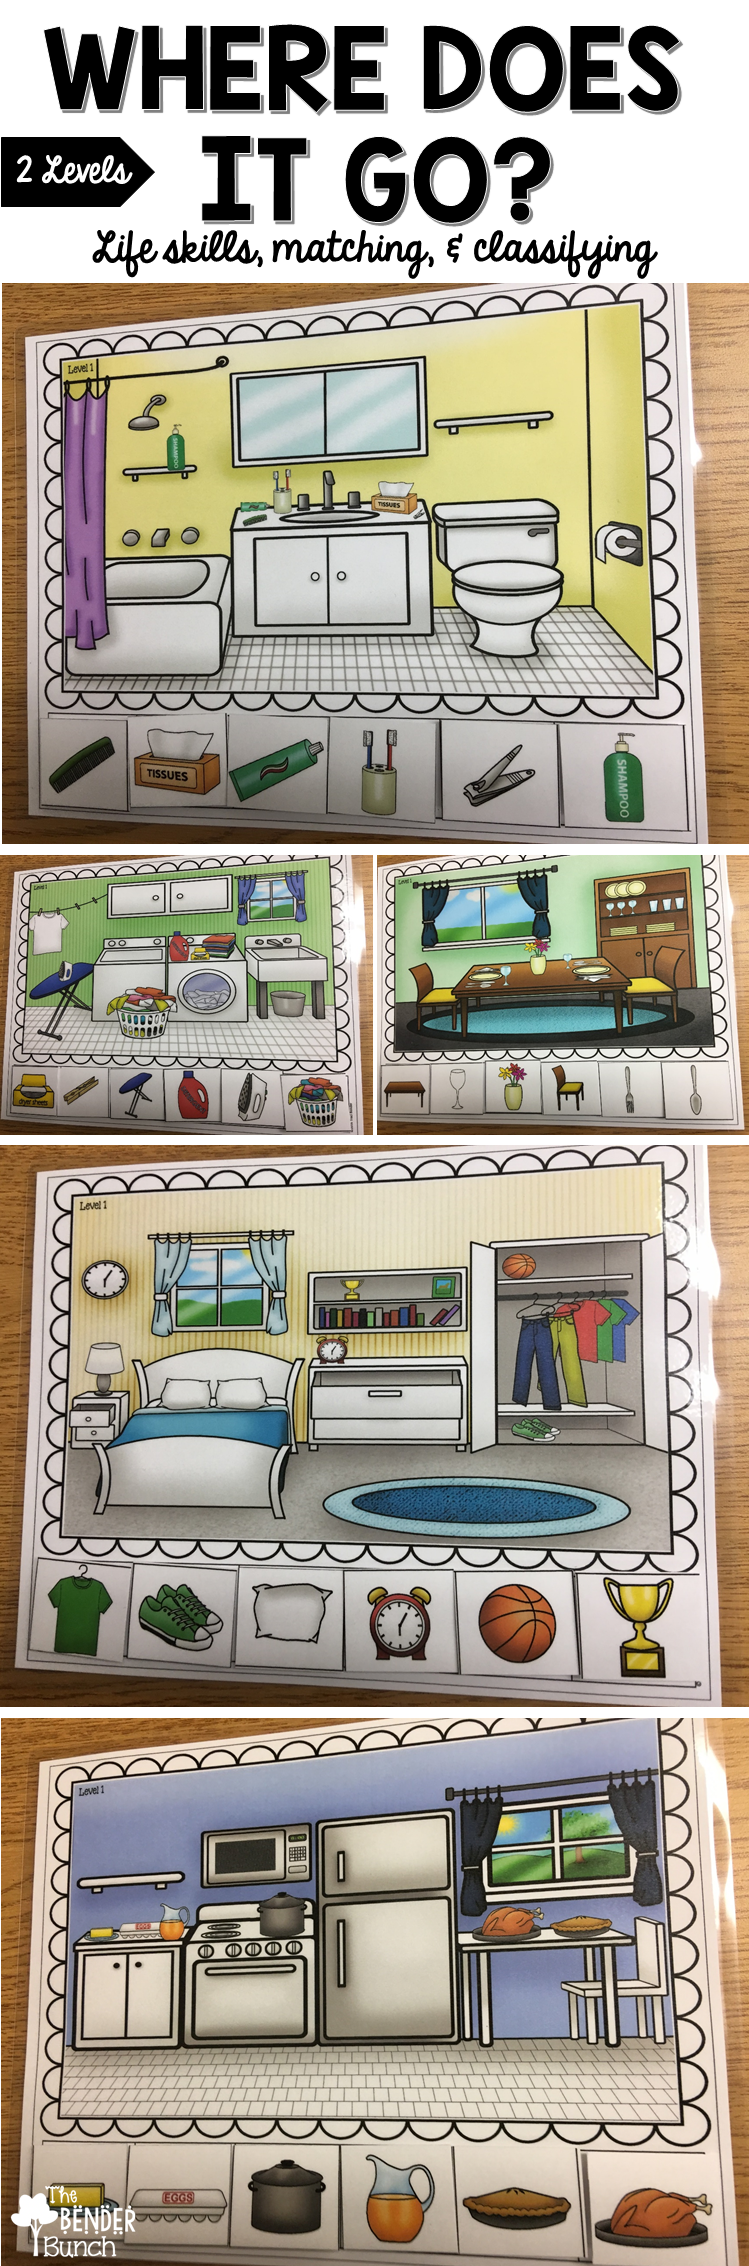 classifying students Students benefit from having lots of experiences sorting, comparing and classifying objects before participating in patterning activities in the image on the left, a.